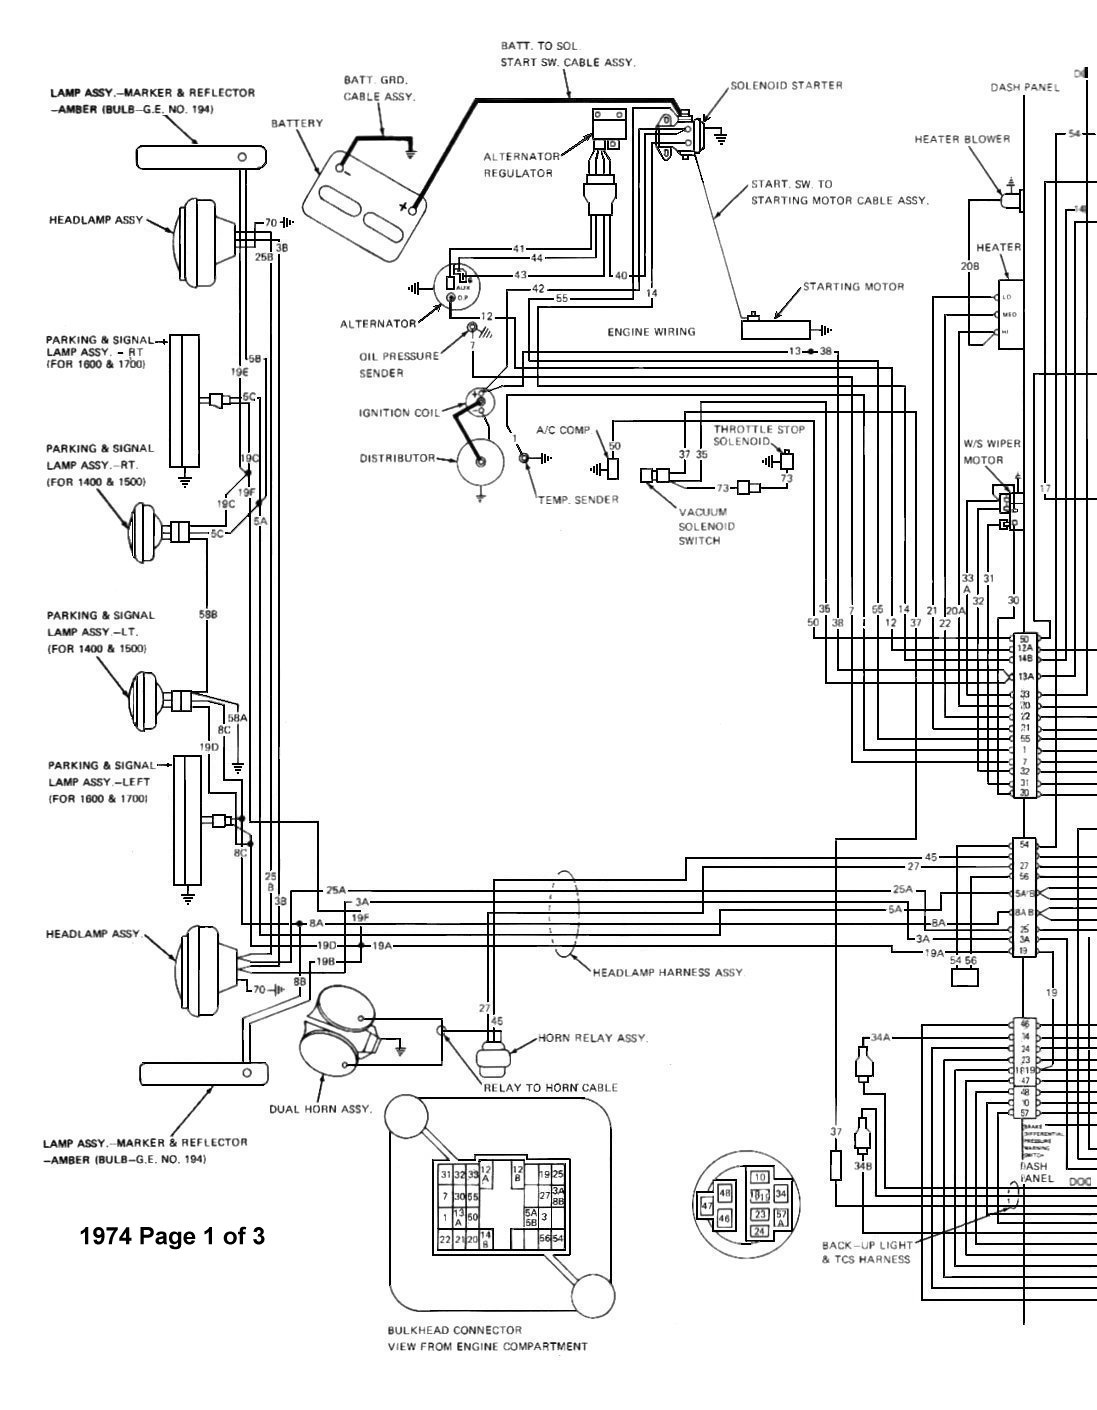 1968 jeep wagoneer wiring diagram diy enthusiasts wiring diagrams u2022 rh broadwaycomputers us